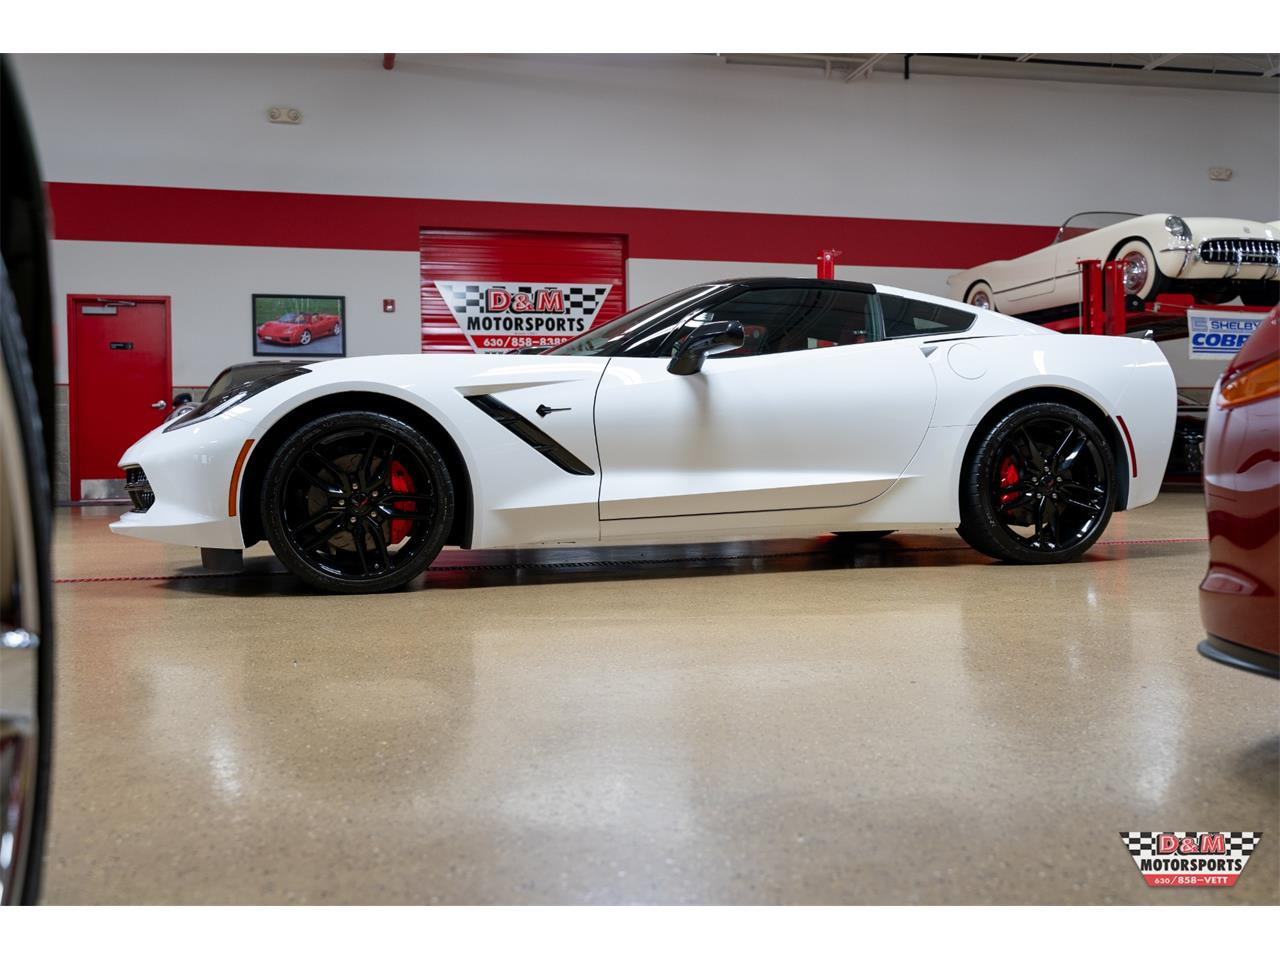 Large Picture of '16 Chevrolet Corvette - $44,995.00 Offered by D & M Motorsports - R2HE